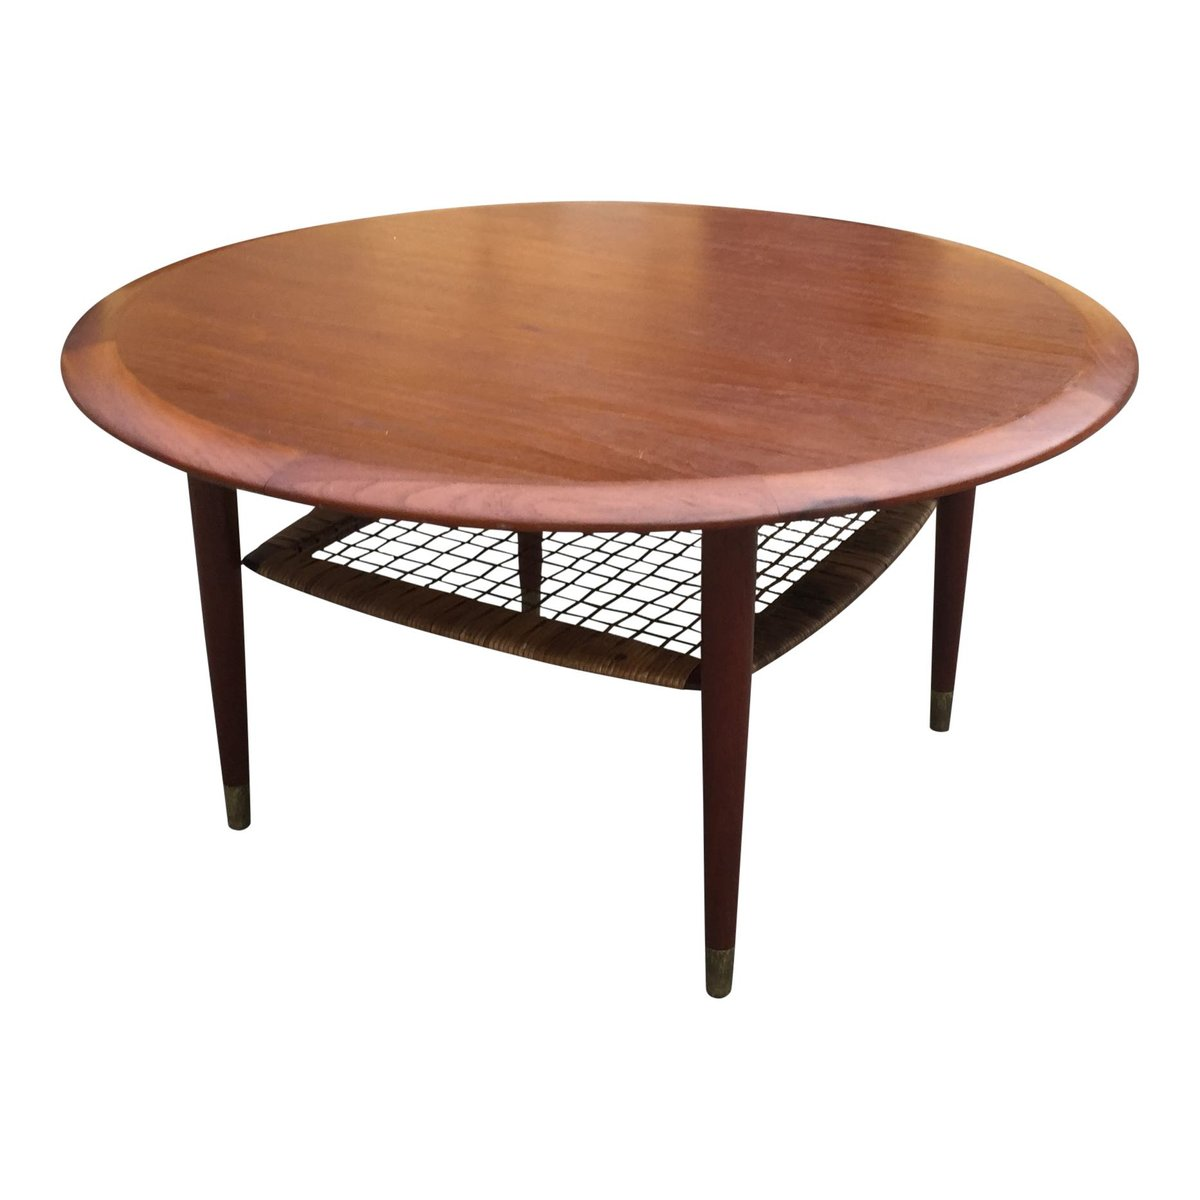 Round teak coffee table from cfc silkeborg 1960s for sale for Round teak table top